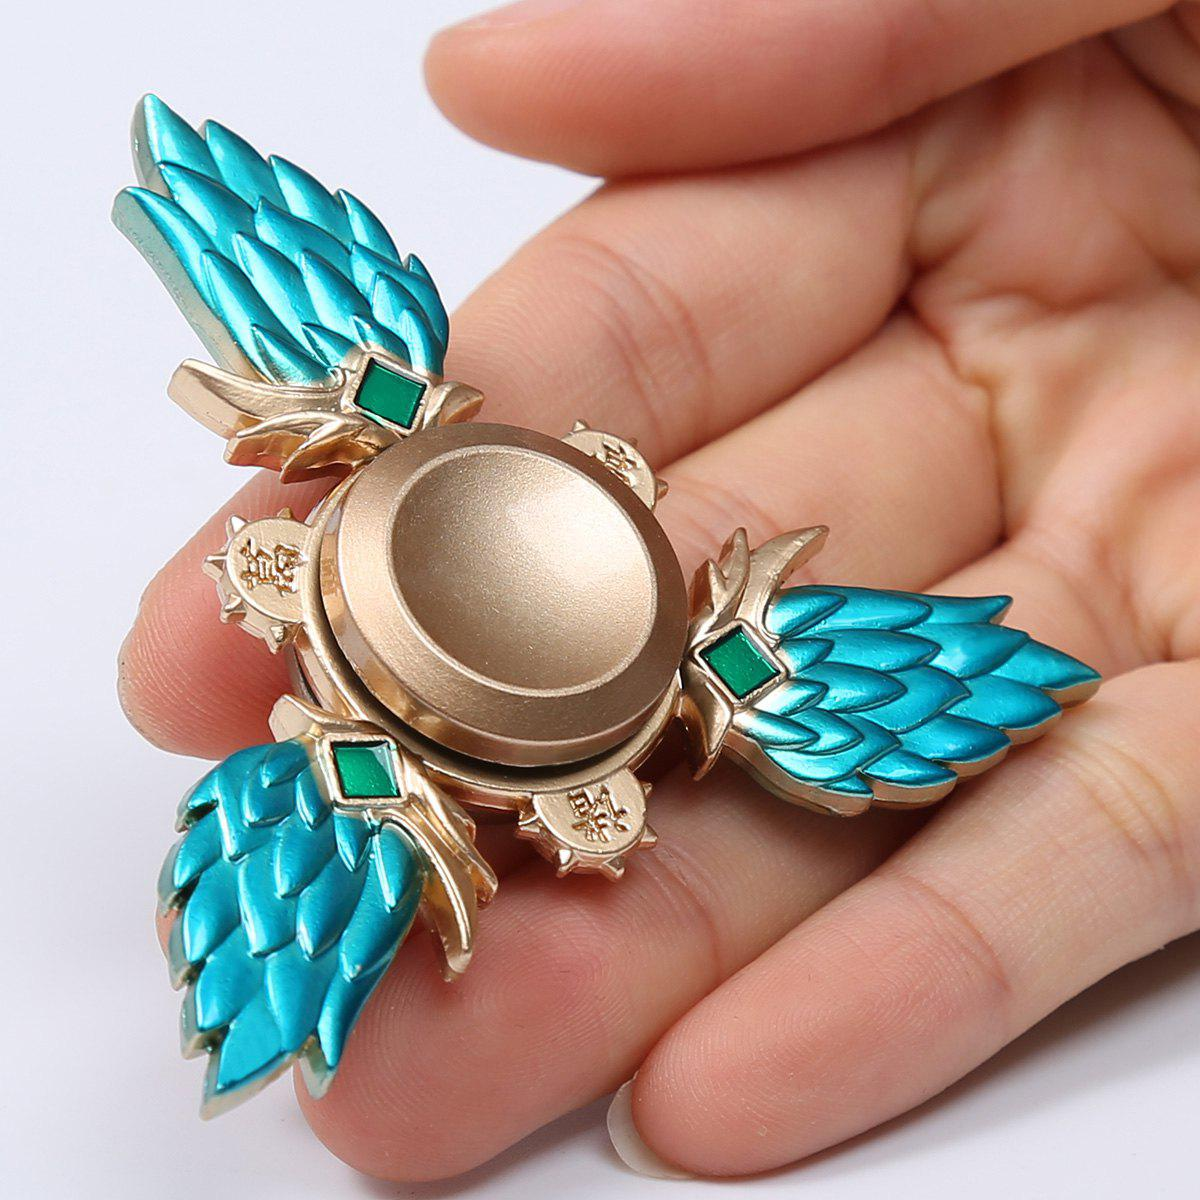 High Speed Metal Fidget Spinner Stress Relief ToyHOME<br><br>Size: 7.7*7.5*1.2CM; Color: LAKE BLUE; Products Type: Fidget Spinner; Theme: Funny; Frame material: Metal; Features: Creative Toy; Shape/Pattern: Triangle; Swing Numbers: Tri-Bar; Weight: 0.0650kg; Package Contents: 1 x Fidget Spinner;